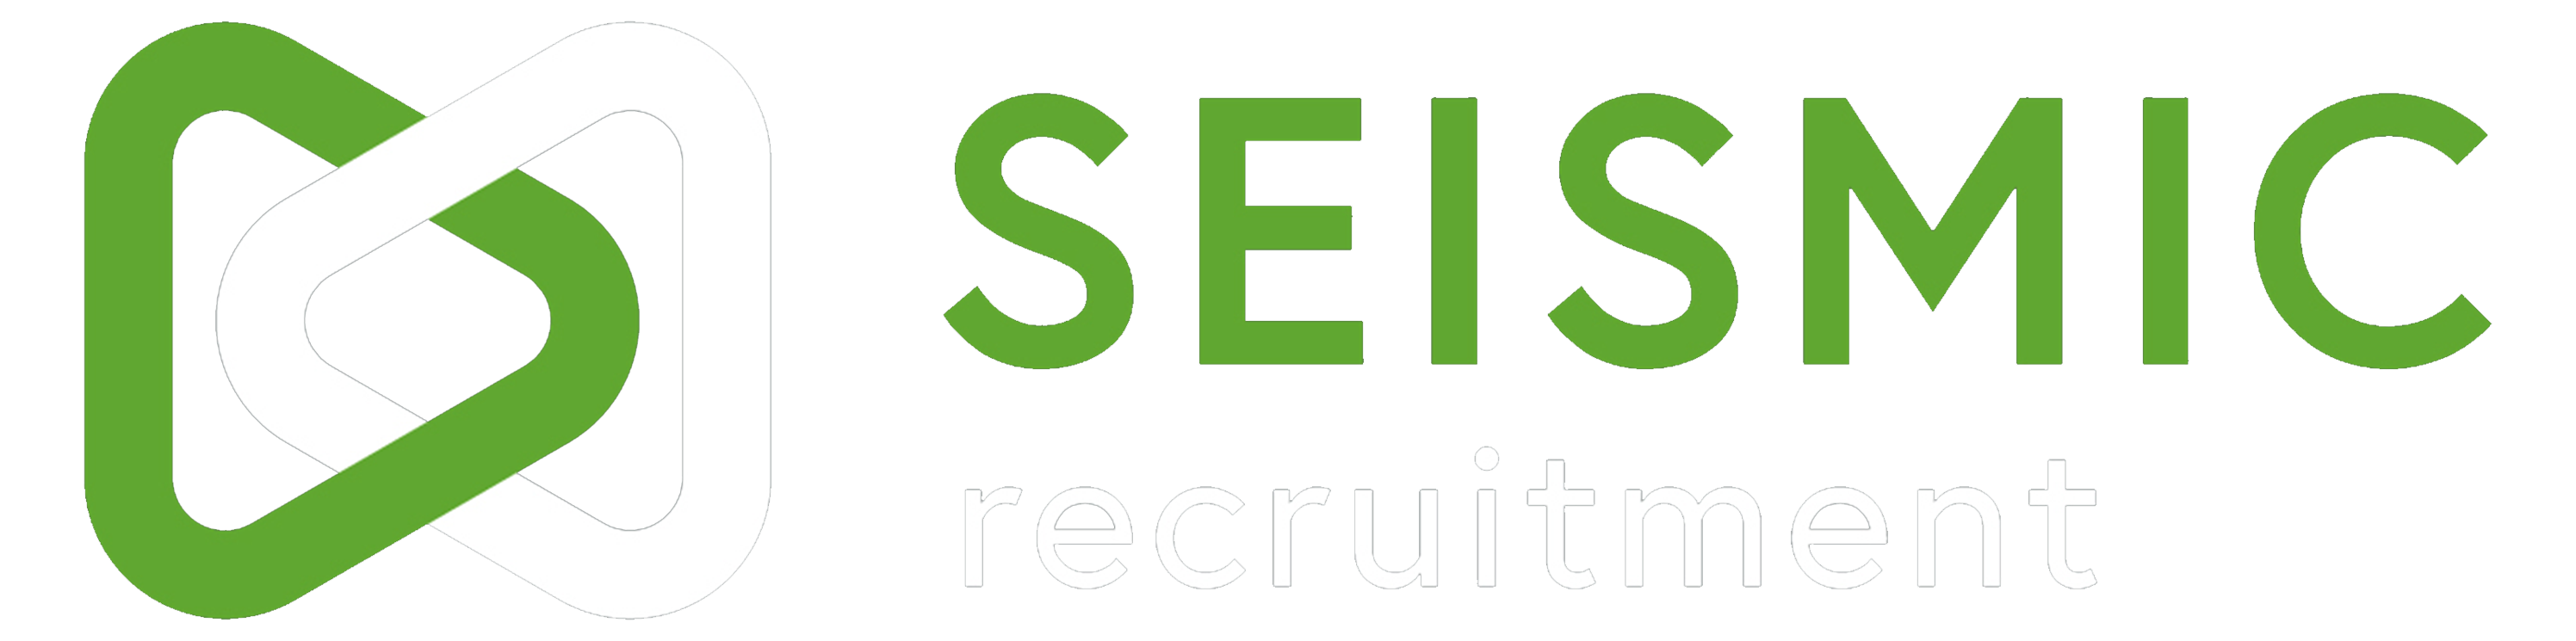 Seismic Recruitment